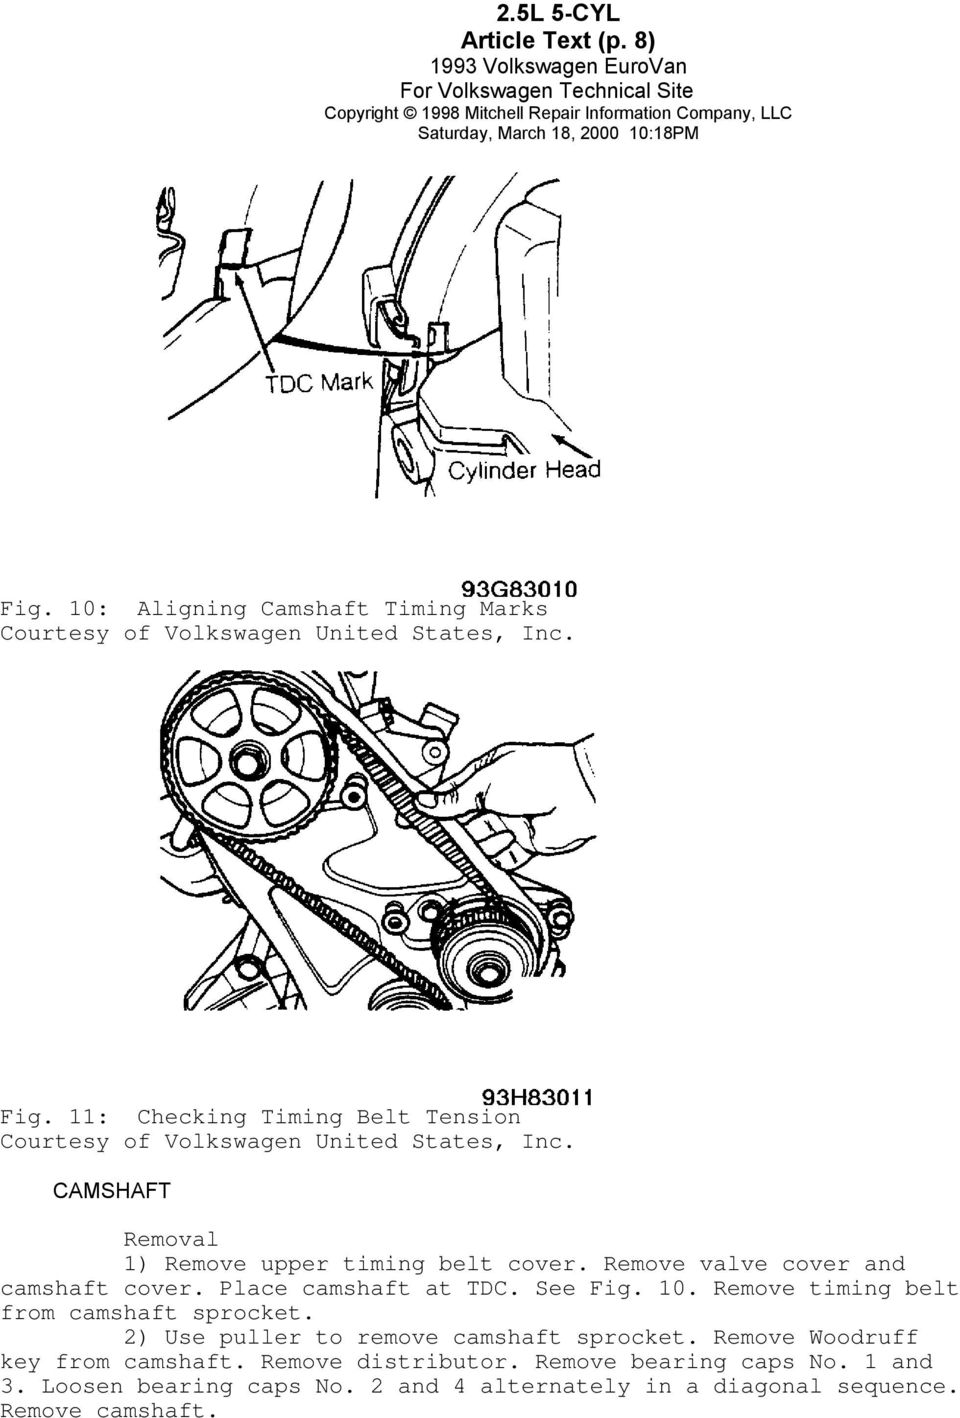 hight resolution of remove valve cover and camshaft cover place camshaft at tdc see fig 10